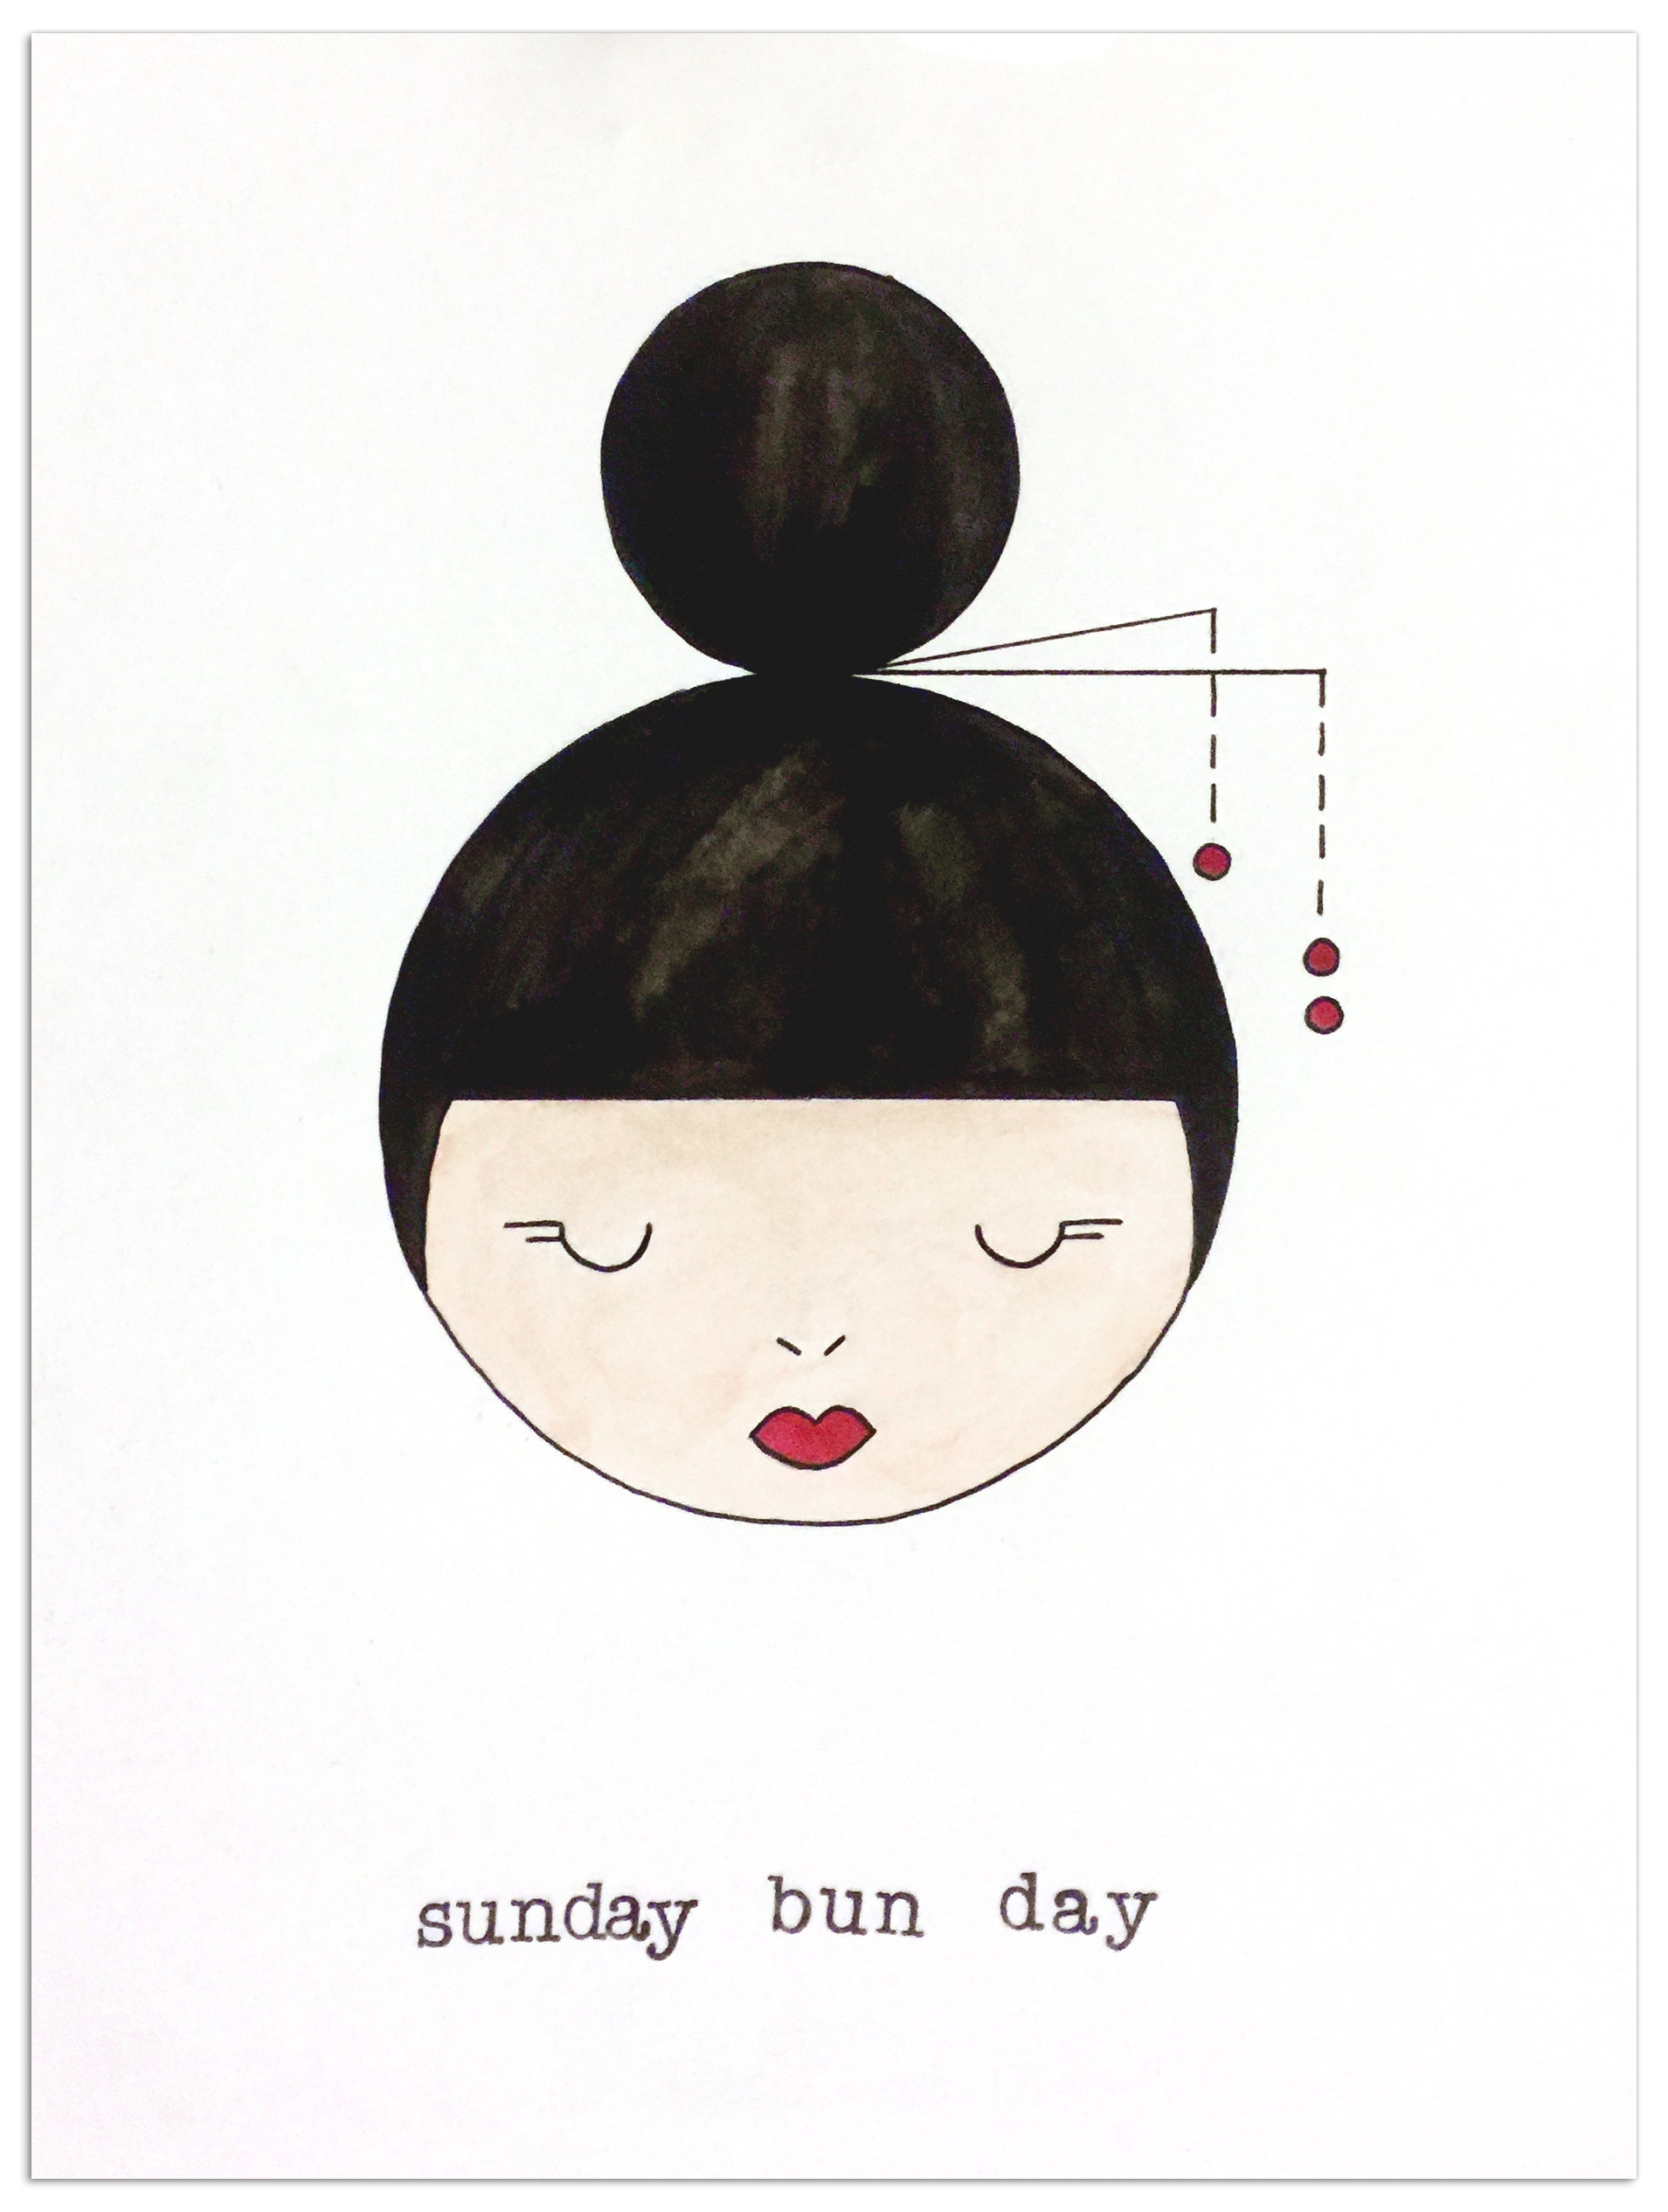 SundayBunday-display.jpg